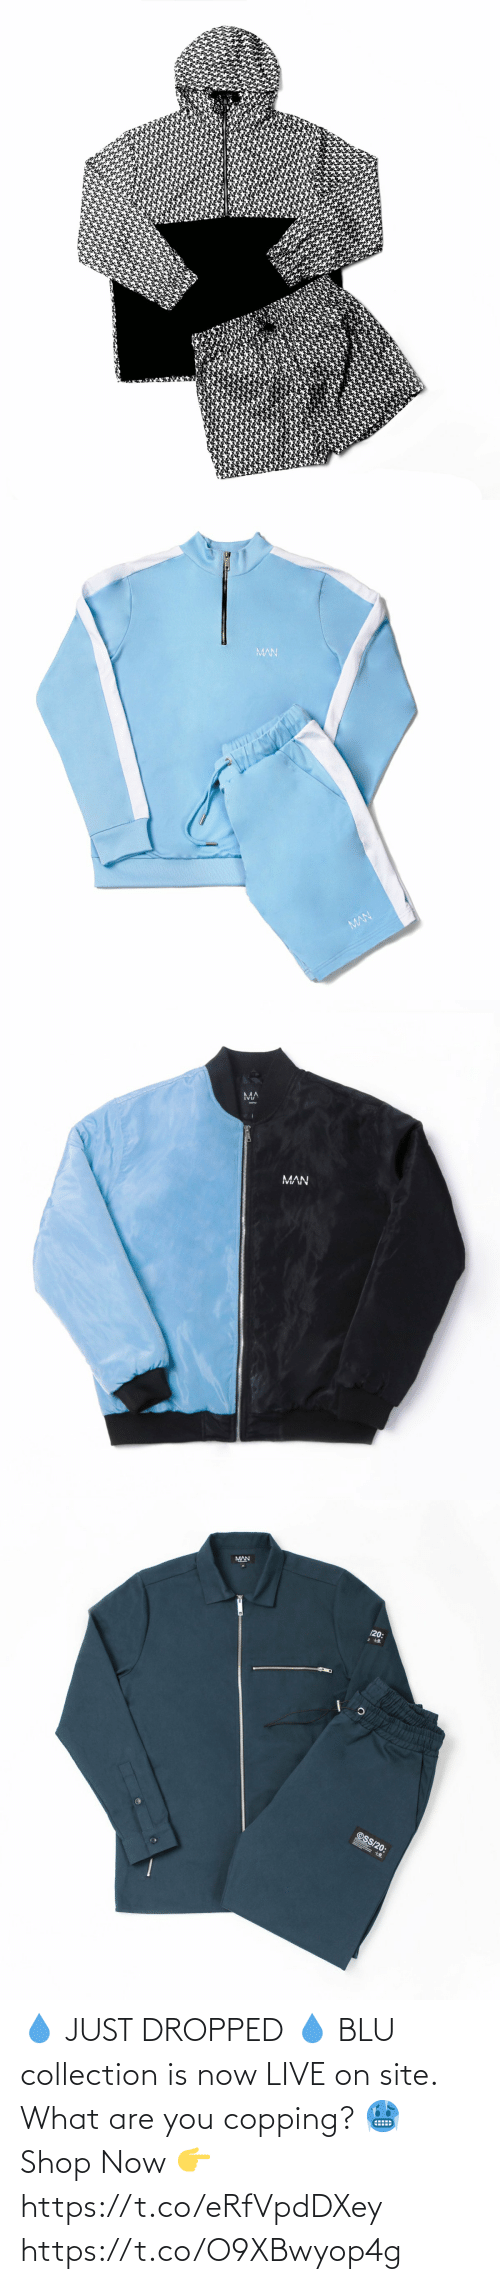 what are: 💧 JUST DROPPED 💧  BLU collection is now LIVE on site. What are you copping? 🥶  Shop Now 👉 https://t.co/eRfVpdDXey https://t.co/O9XBwyop4g